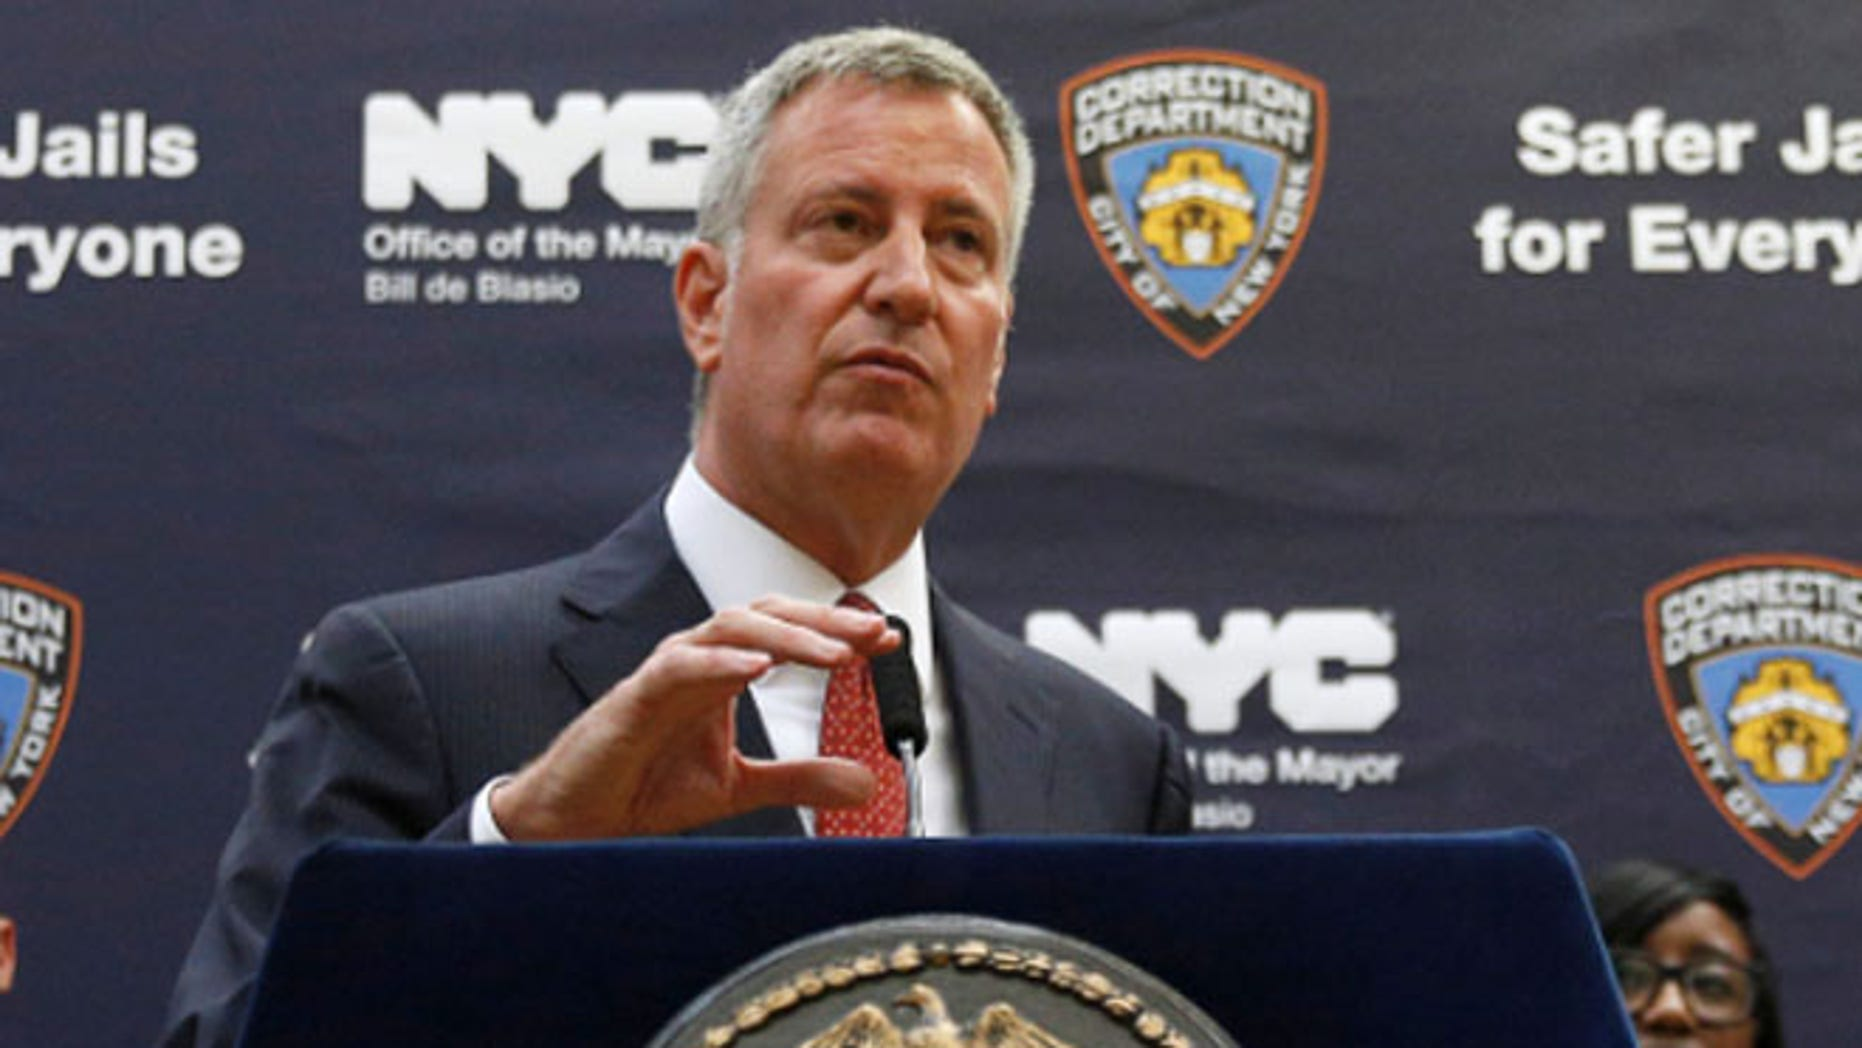 A local paper reported that Mothers Against Drunk Driving railed against Mayor Bill de Blasio's comments.